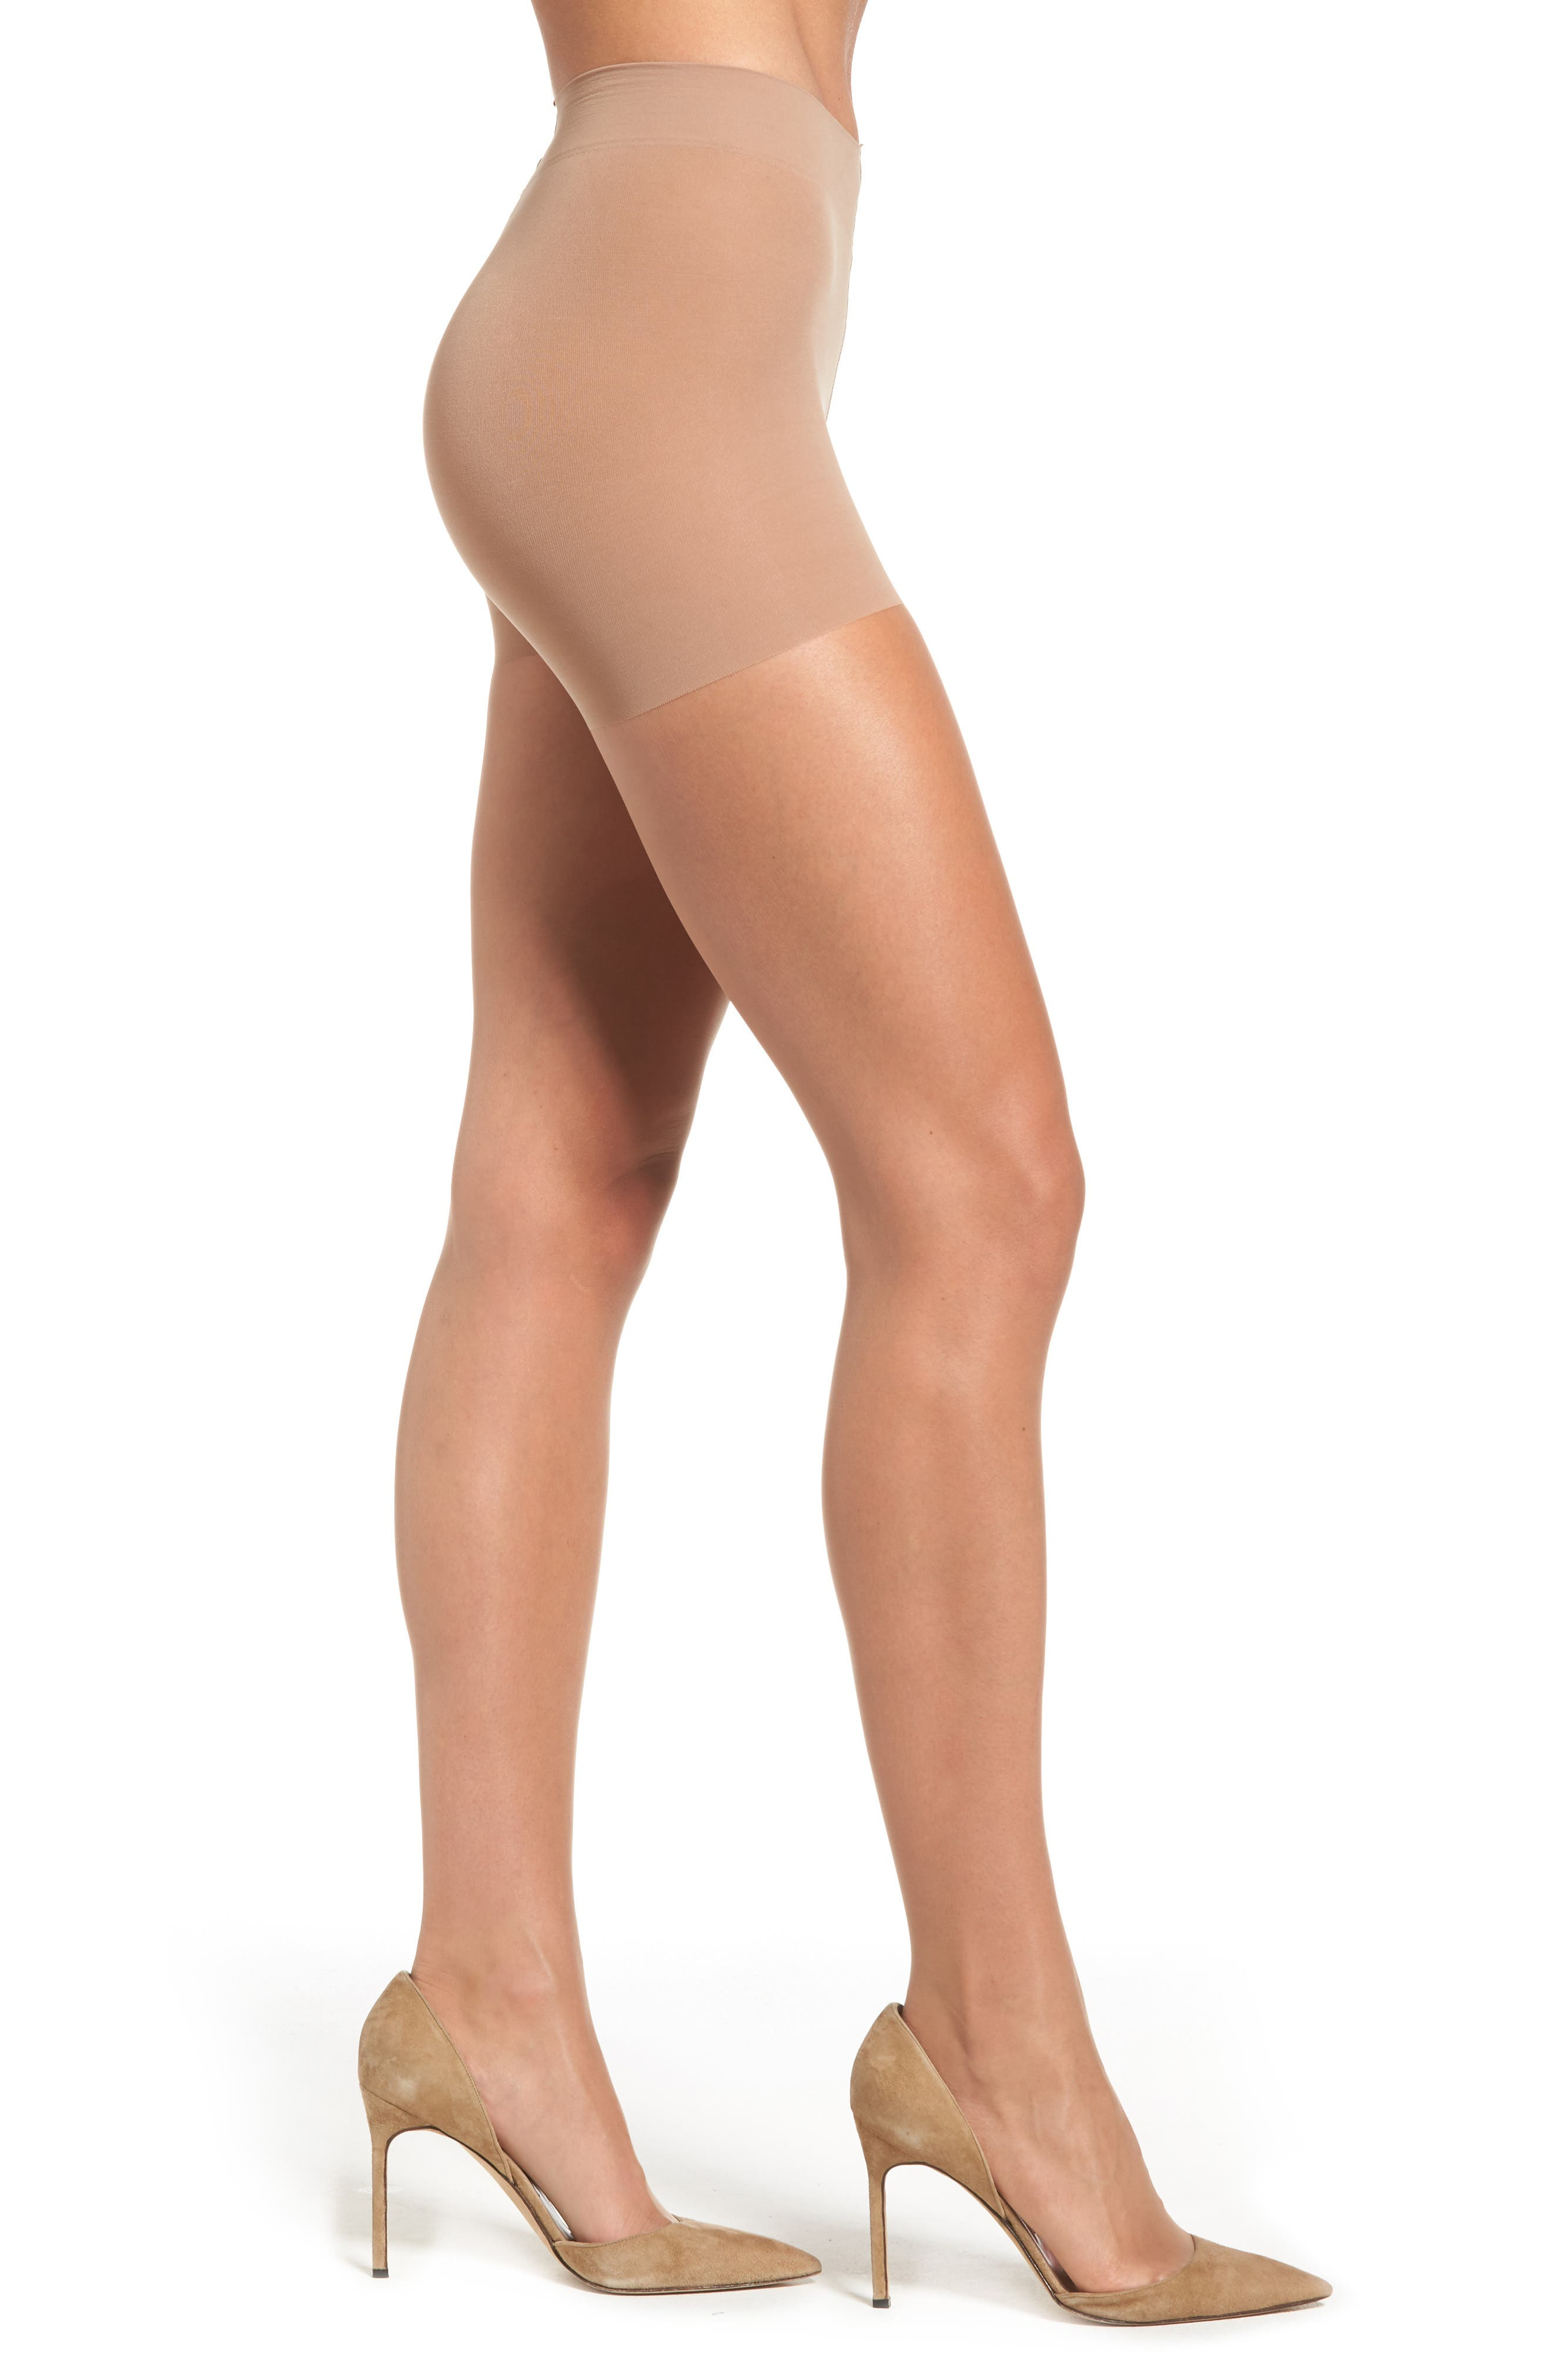 Perfect Nudes Pantyhose,                         Main,                         color, Beige/ Nude